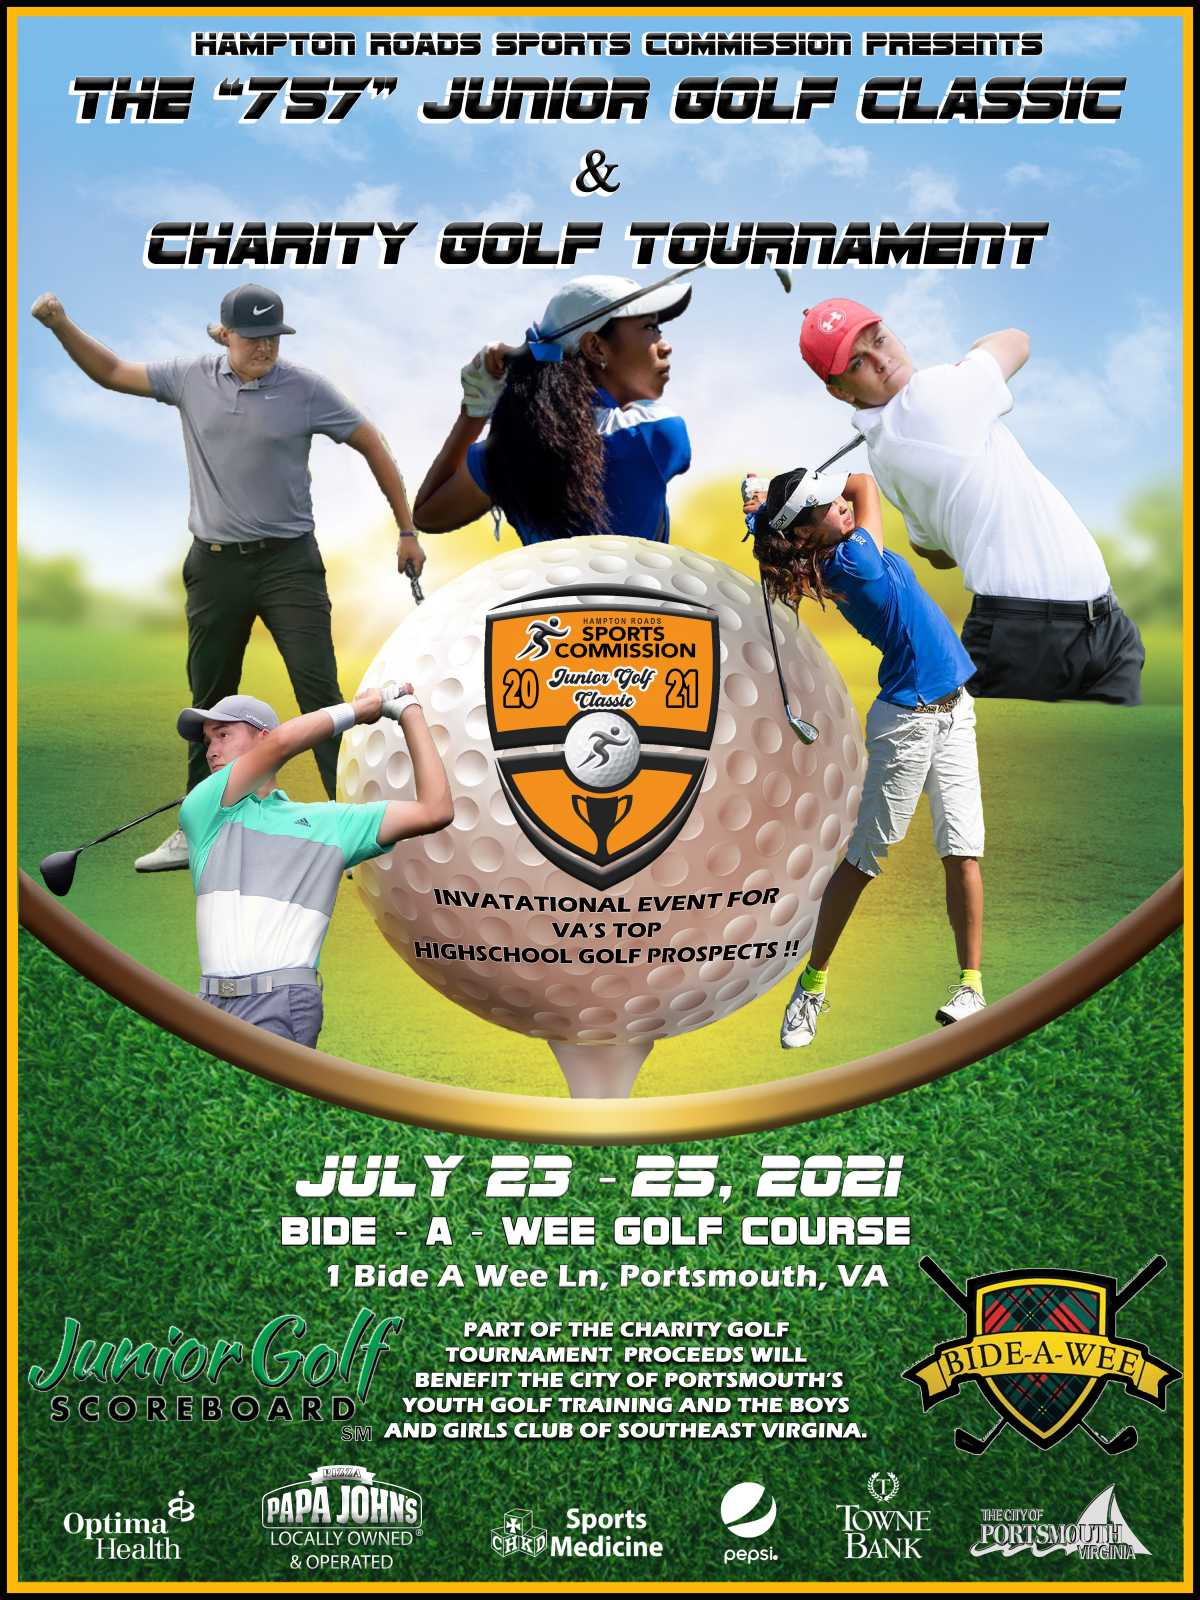 HRSC, Bide-A-Wee Golf Course to Host 757 Junior Golf Classic and Charity Tournament